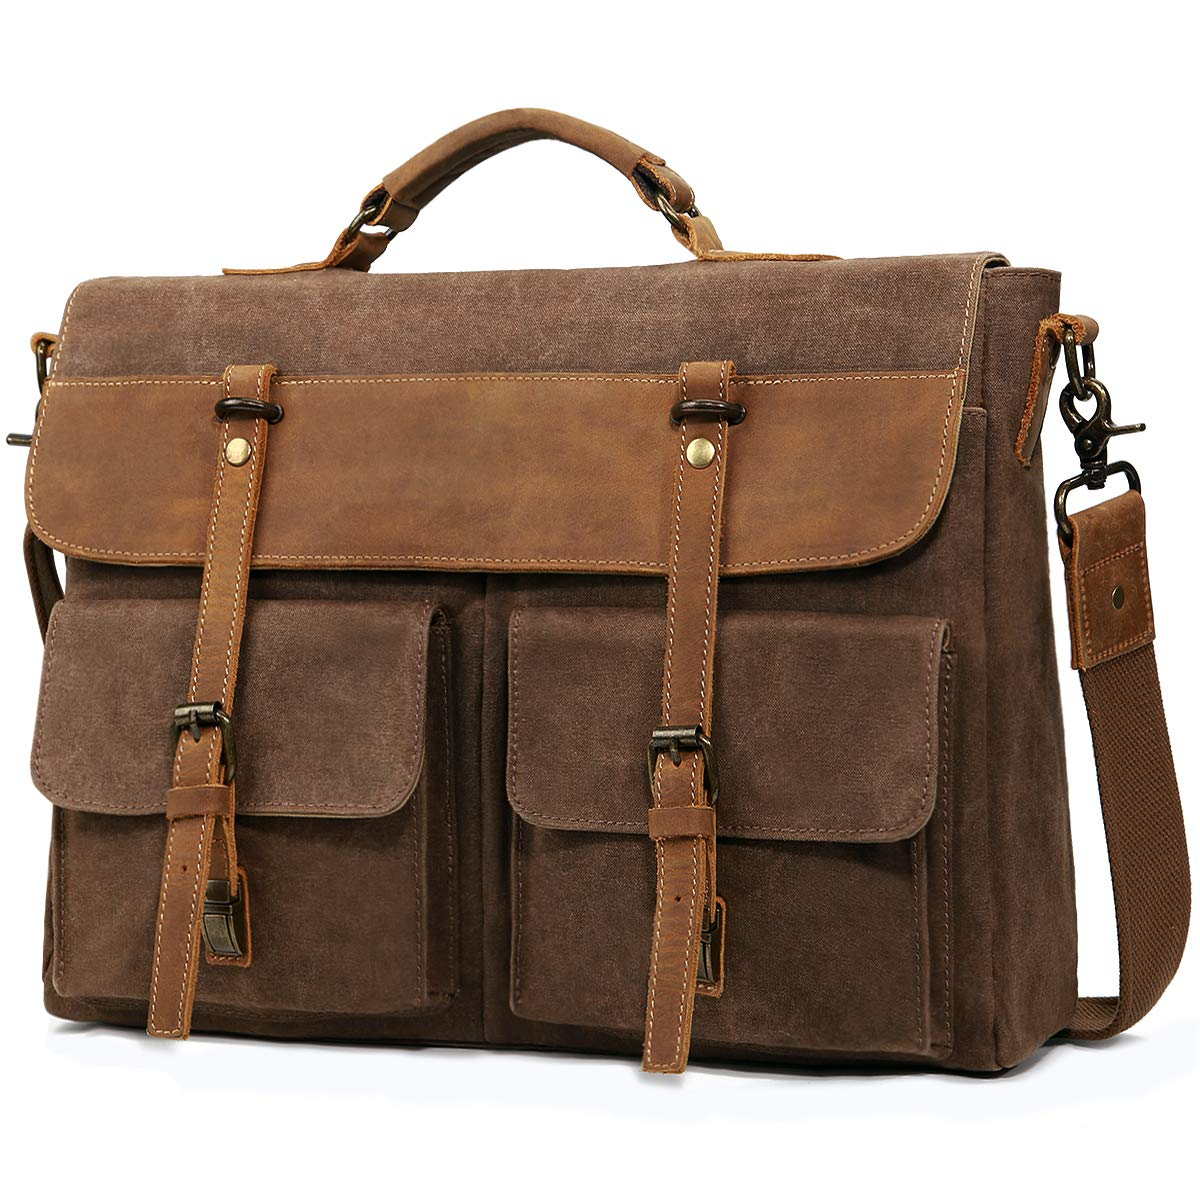 Large Messenger Bag for Men Tocode, Vintage Waxed Canvas Satchel Leather Briefcases Crossbody Shoulder Bags, 15.6 inch Computer Laptop Bags Water Resistant Travel Work Bag (Coffee)